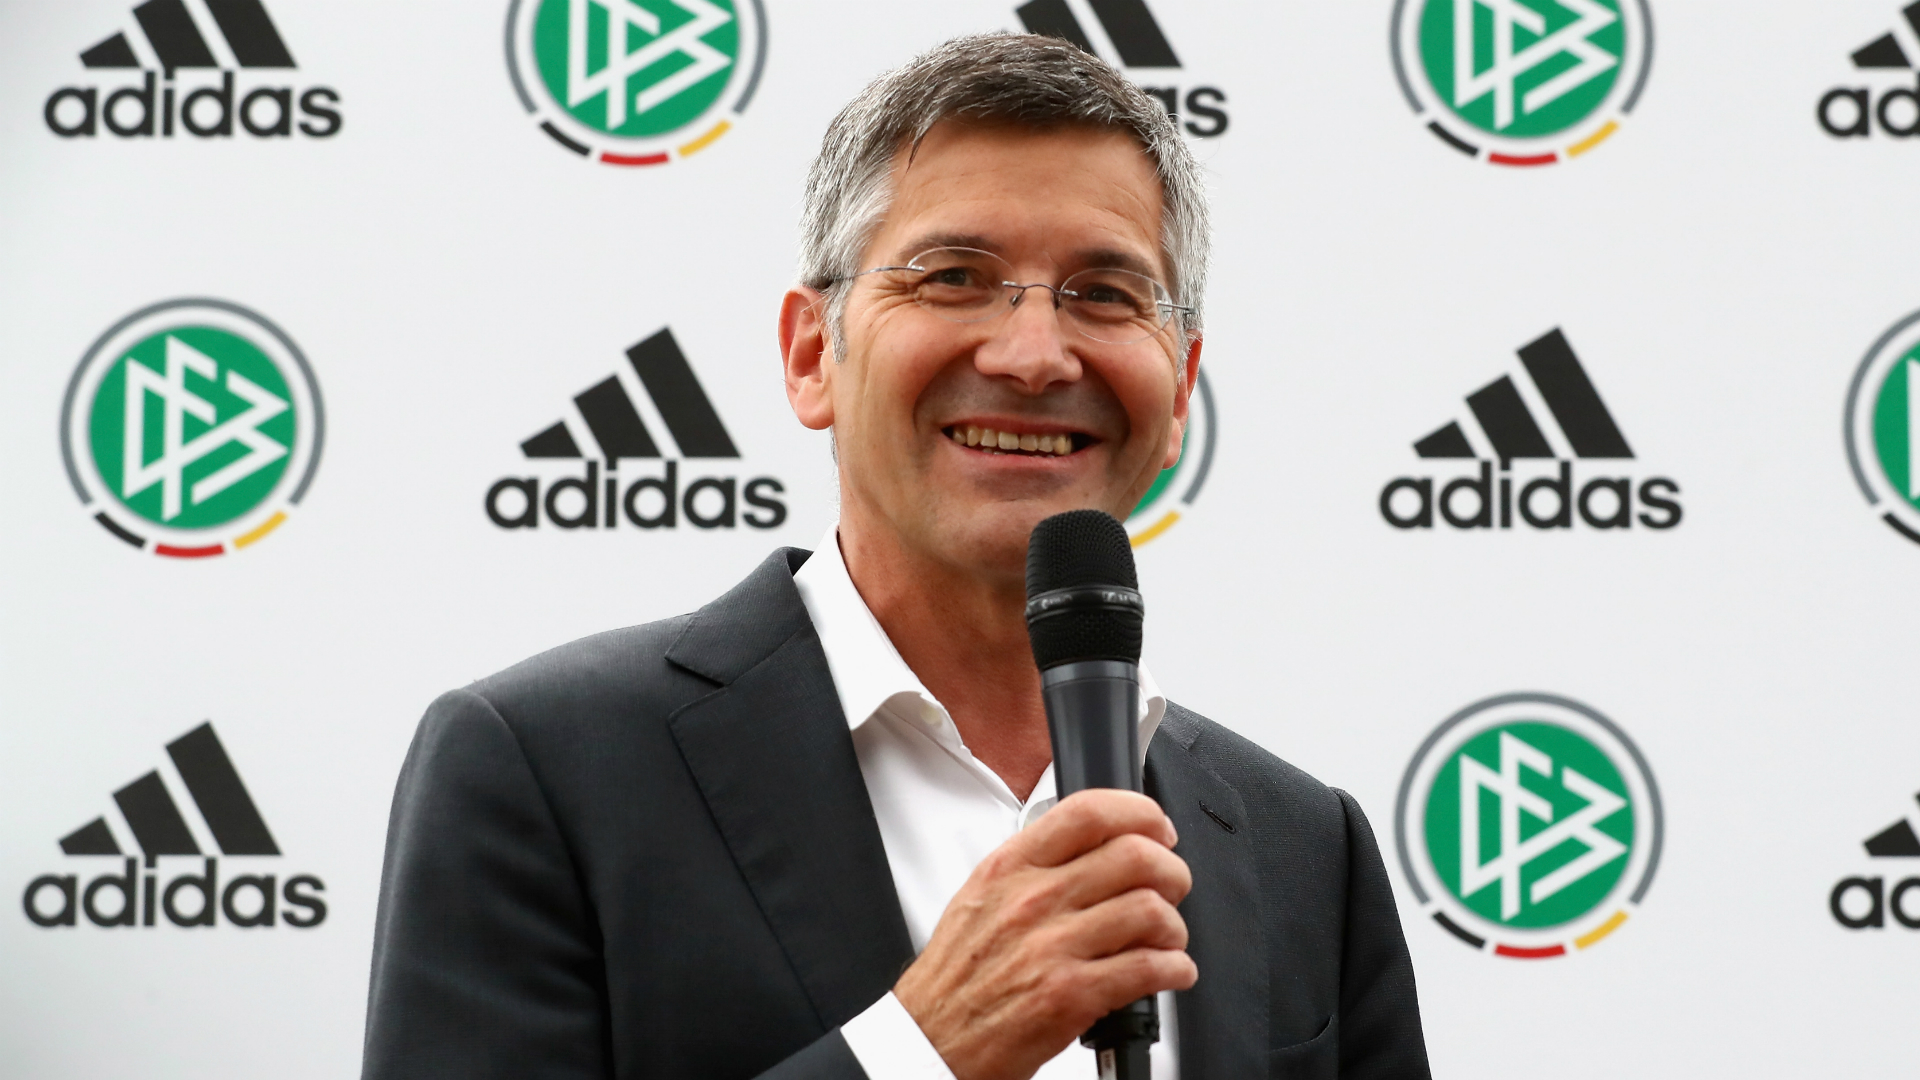 Hainer confirmed as new Bayern Munich president